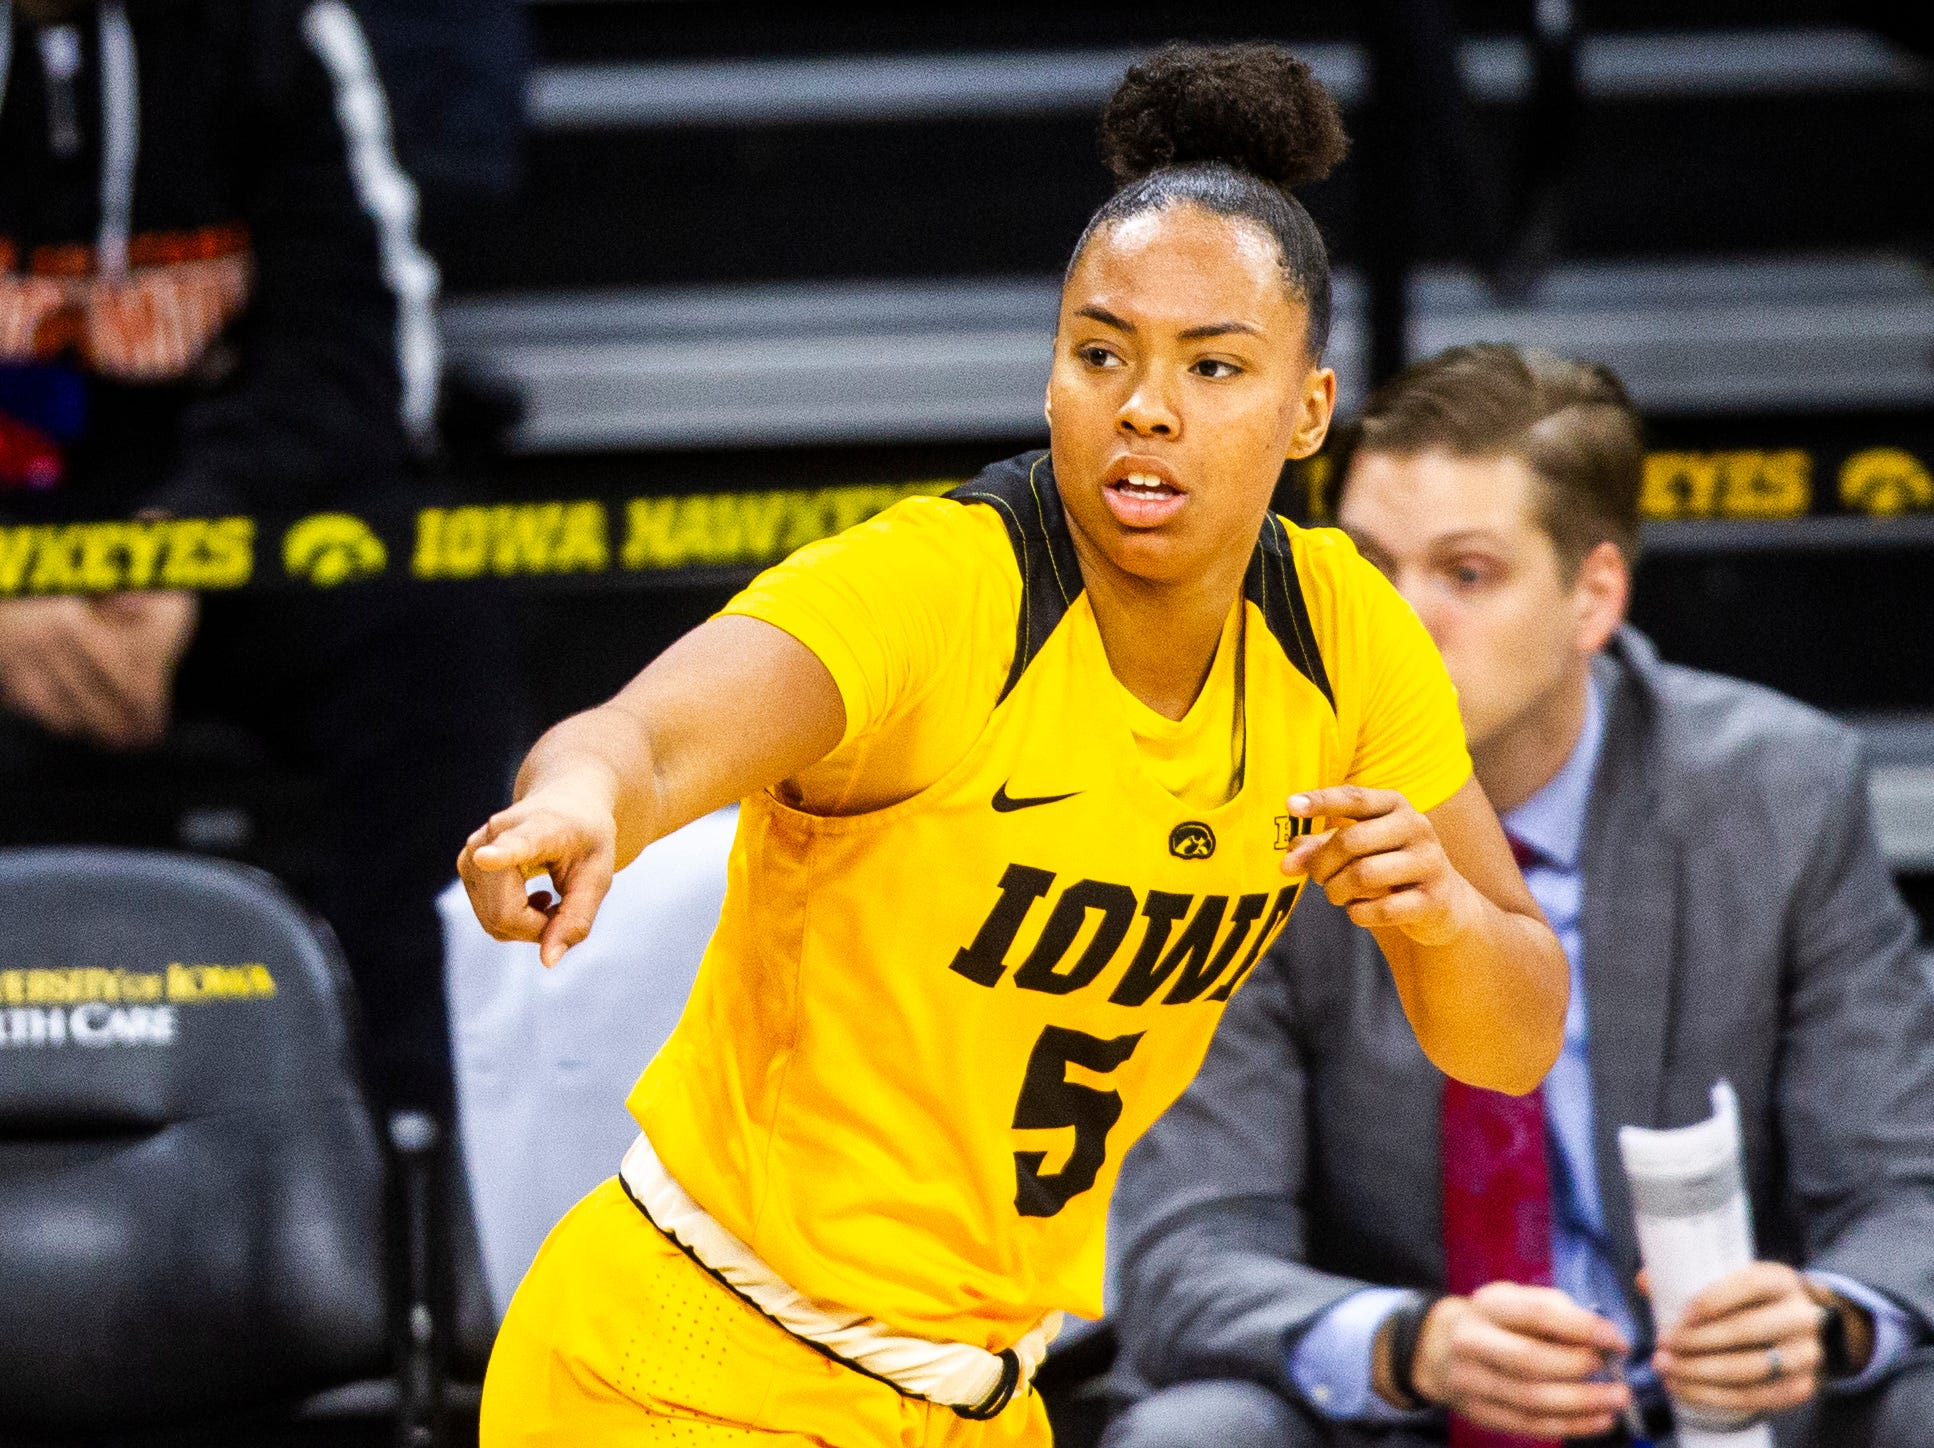 Iowa guard Alexis Sevillian (5) gestures after making a 3-point basket during a NCAA women's basketball game on Sunday, Dec. 2, 2018, at Carver-Hawkeye Arena in Iowa City.